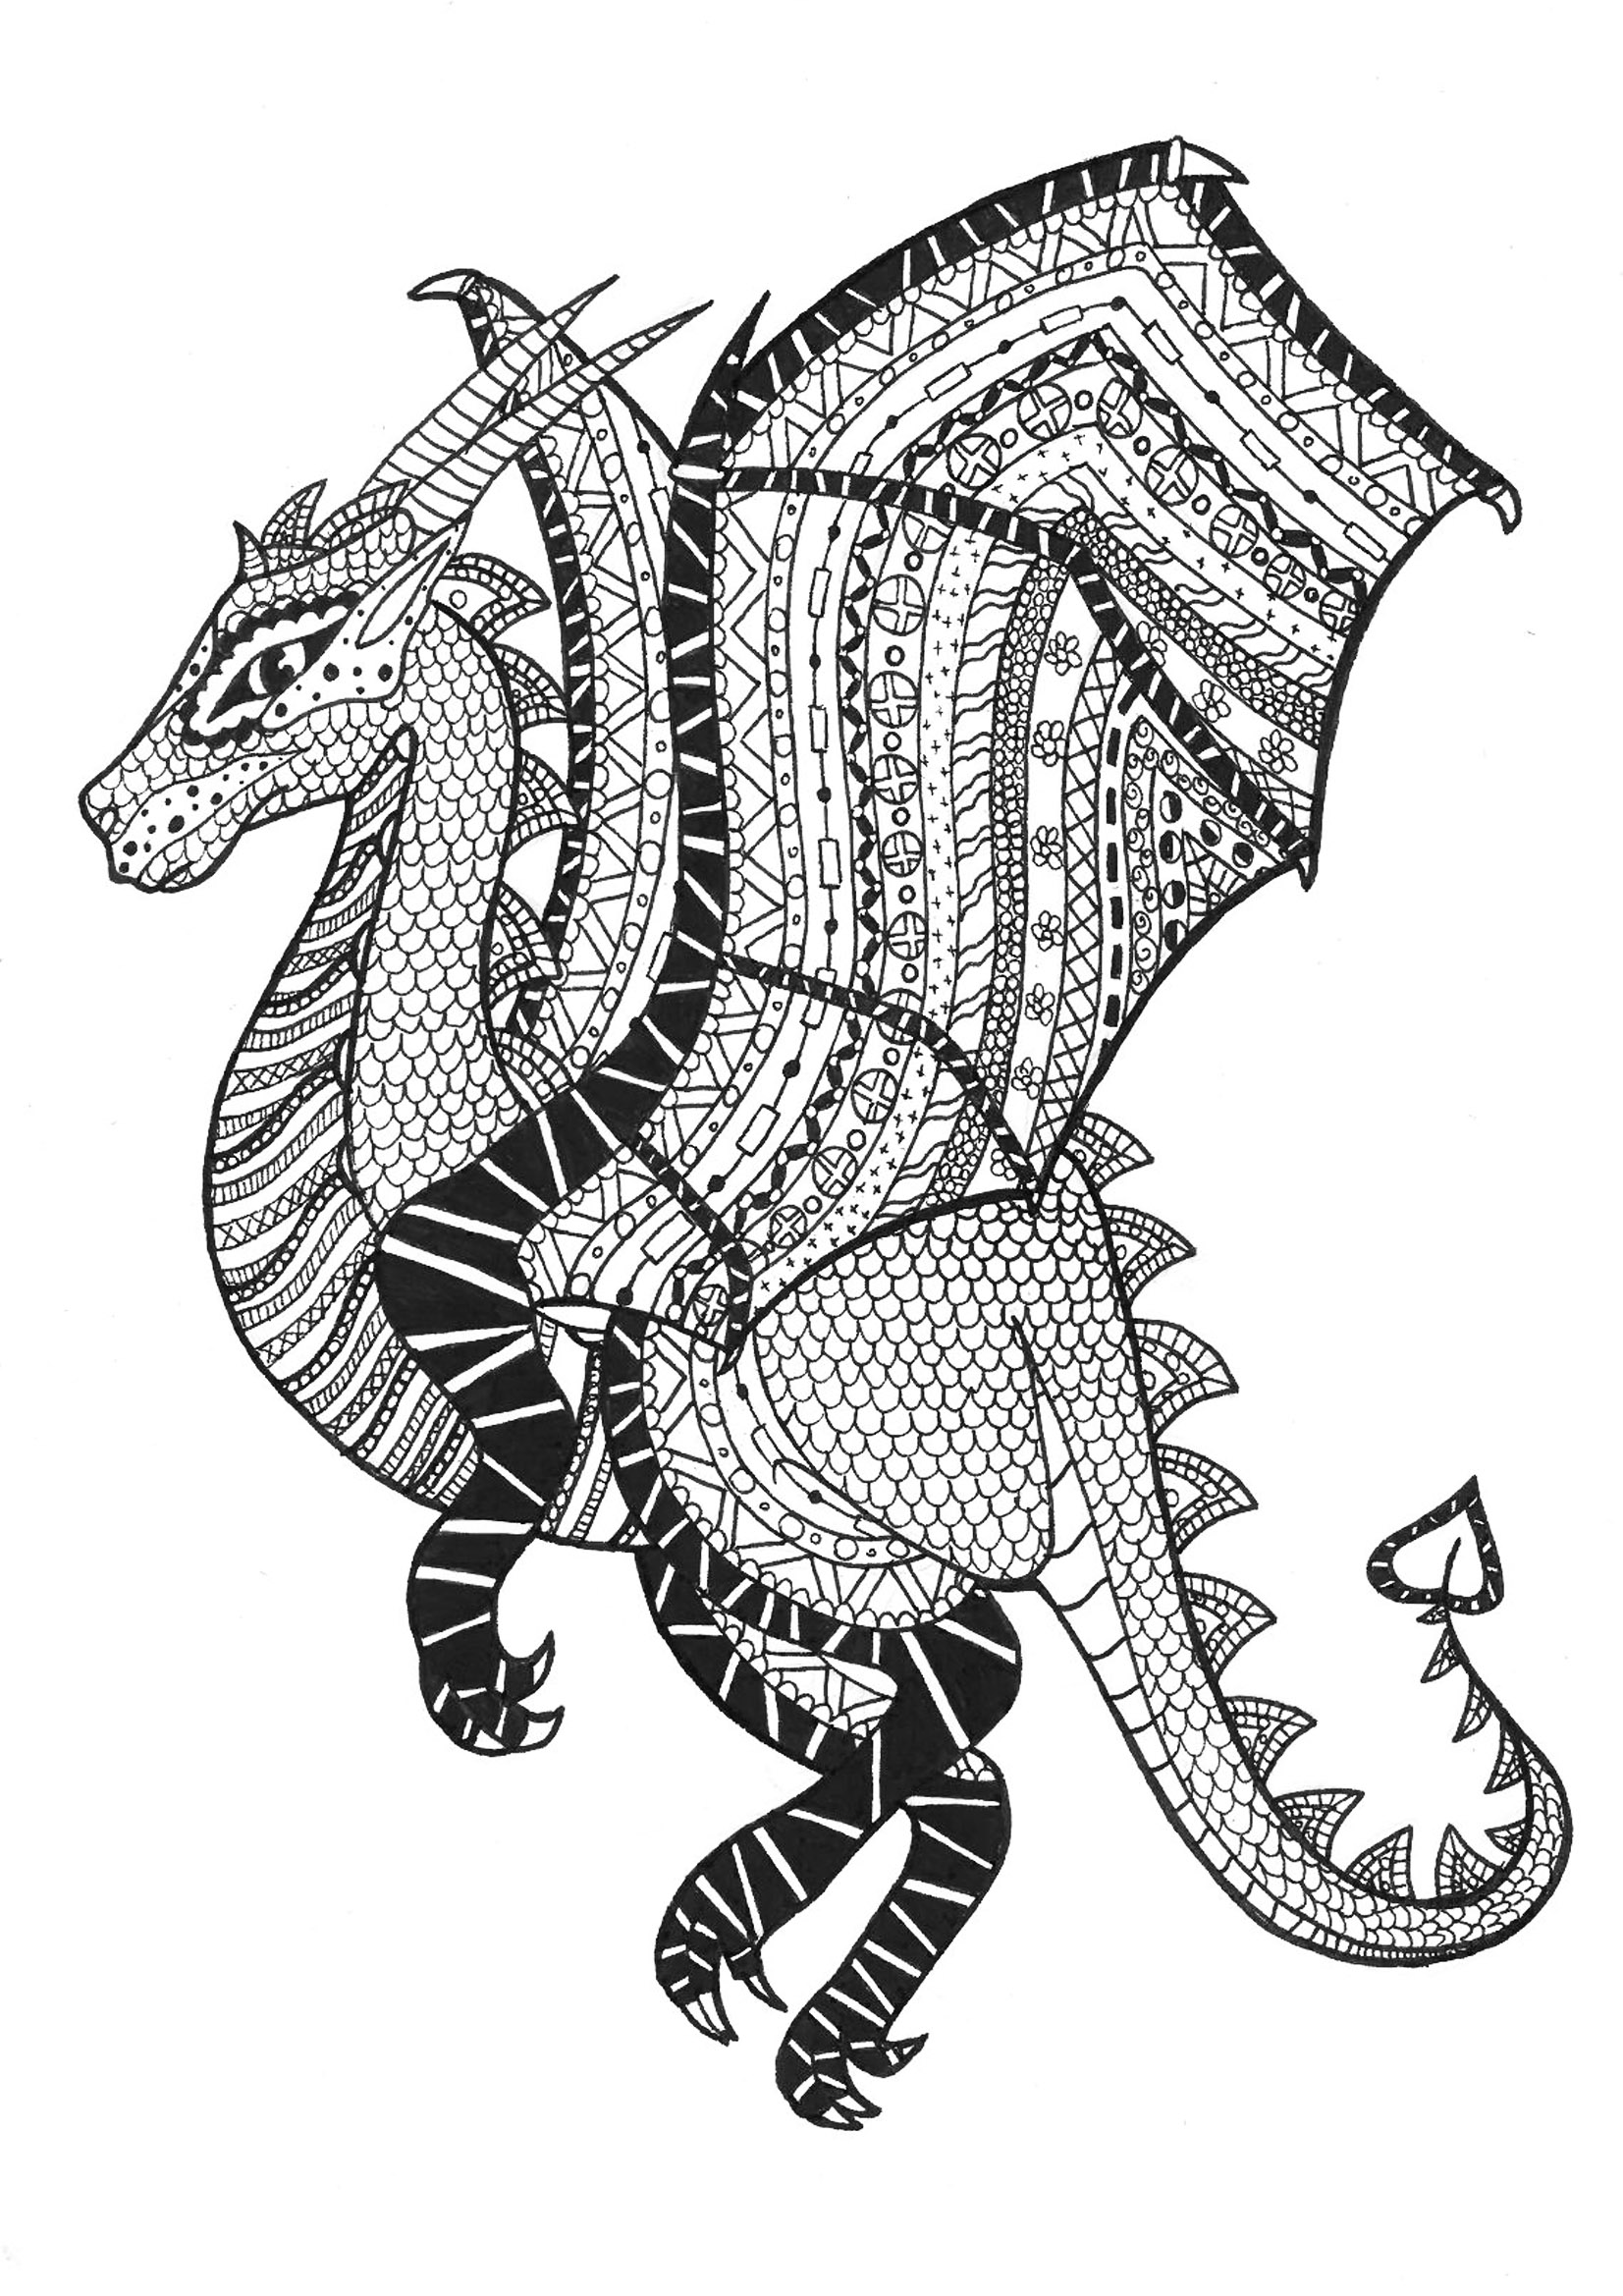 zentangle coloring pages free printable free printable zentangle coloring pages for adults free coloring pages printable zentangle